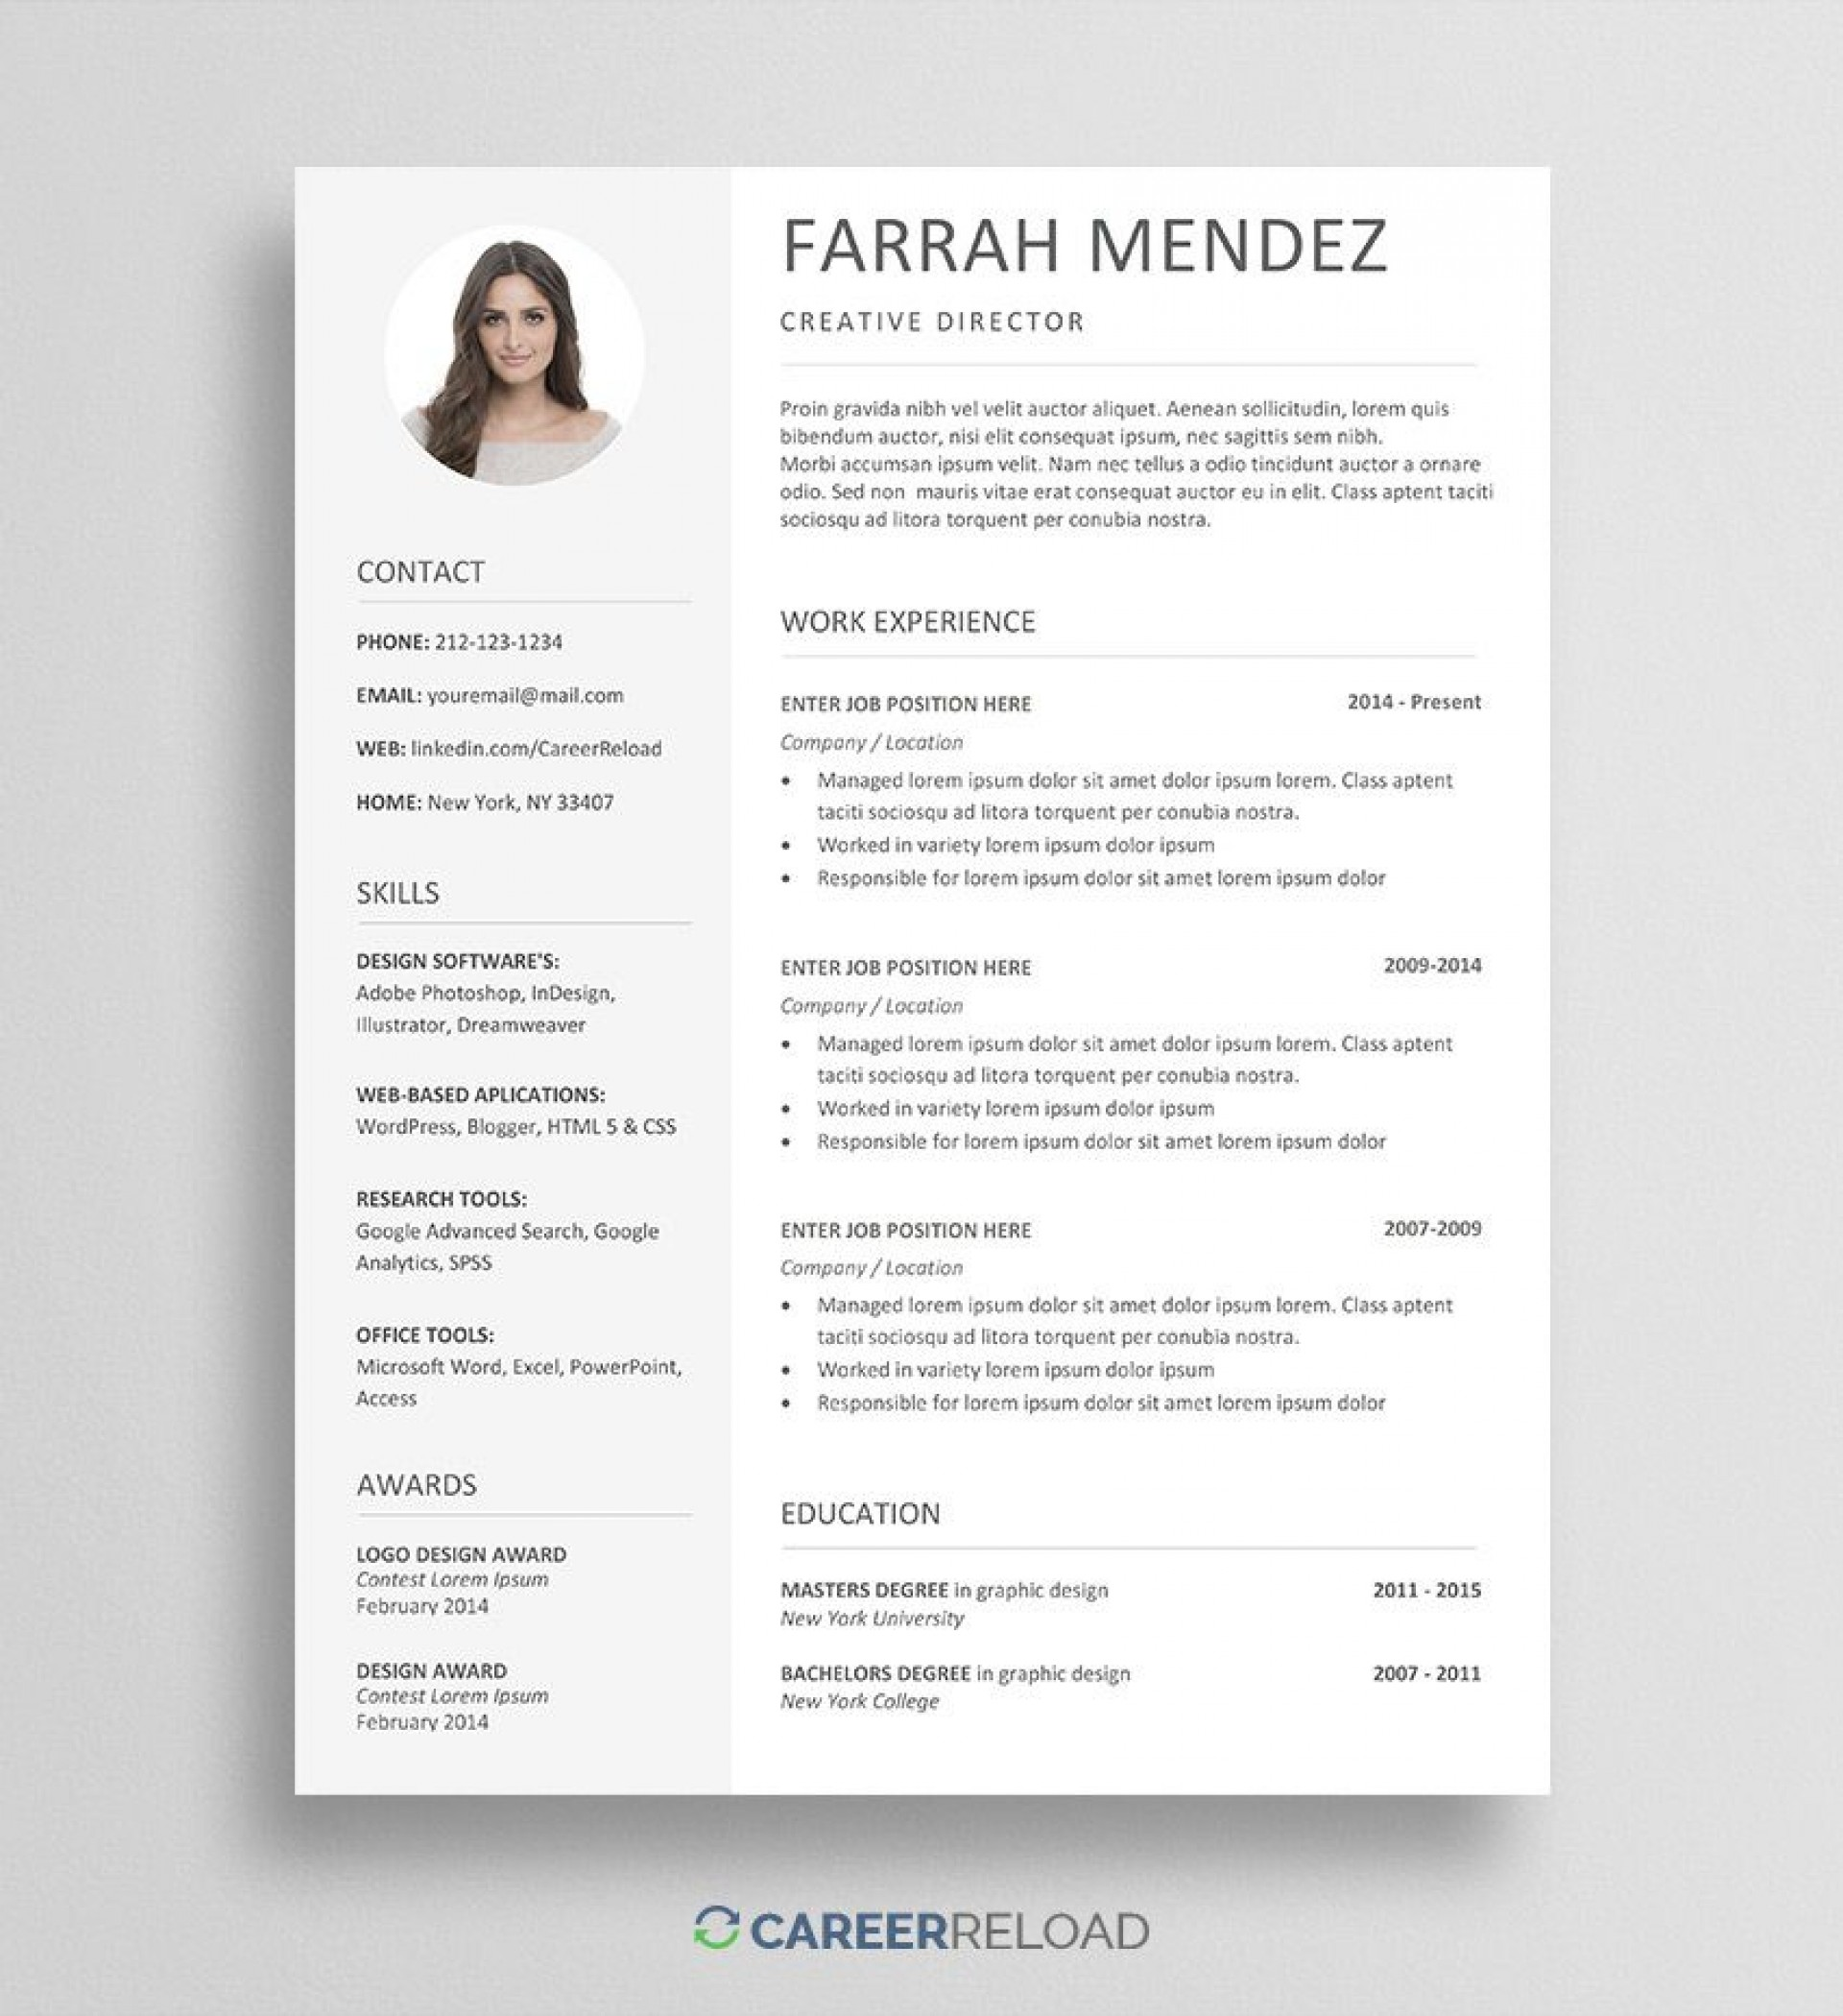 003 Remarkable Resume Template Download Word Inspiration  Cv Free 2018 2007 Document For Fresher1920